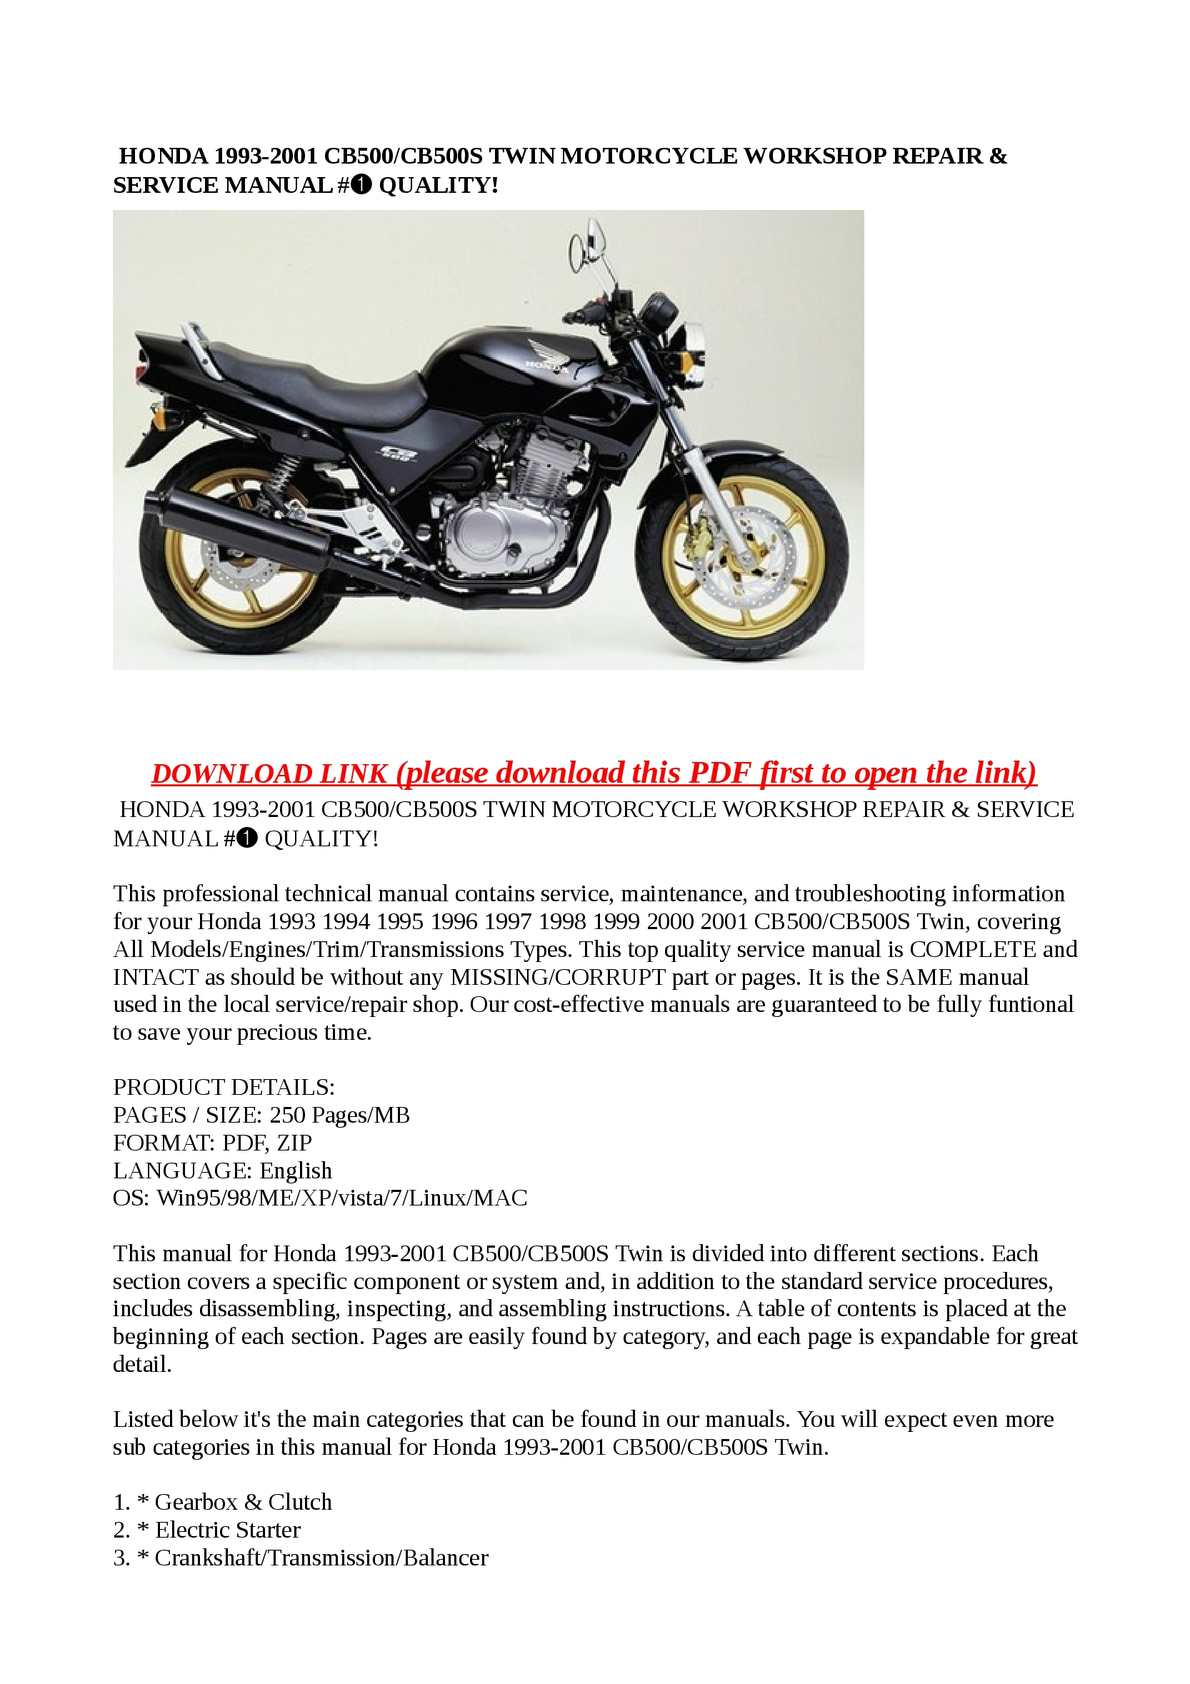 Calaméo - HONDA 1993-2001 CB500/CB500S TWIN MOTORCYCLE WORKSHOP REPAIR & SERVICE MANUAL # QUALITY!